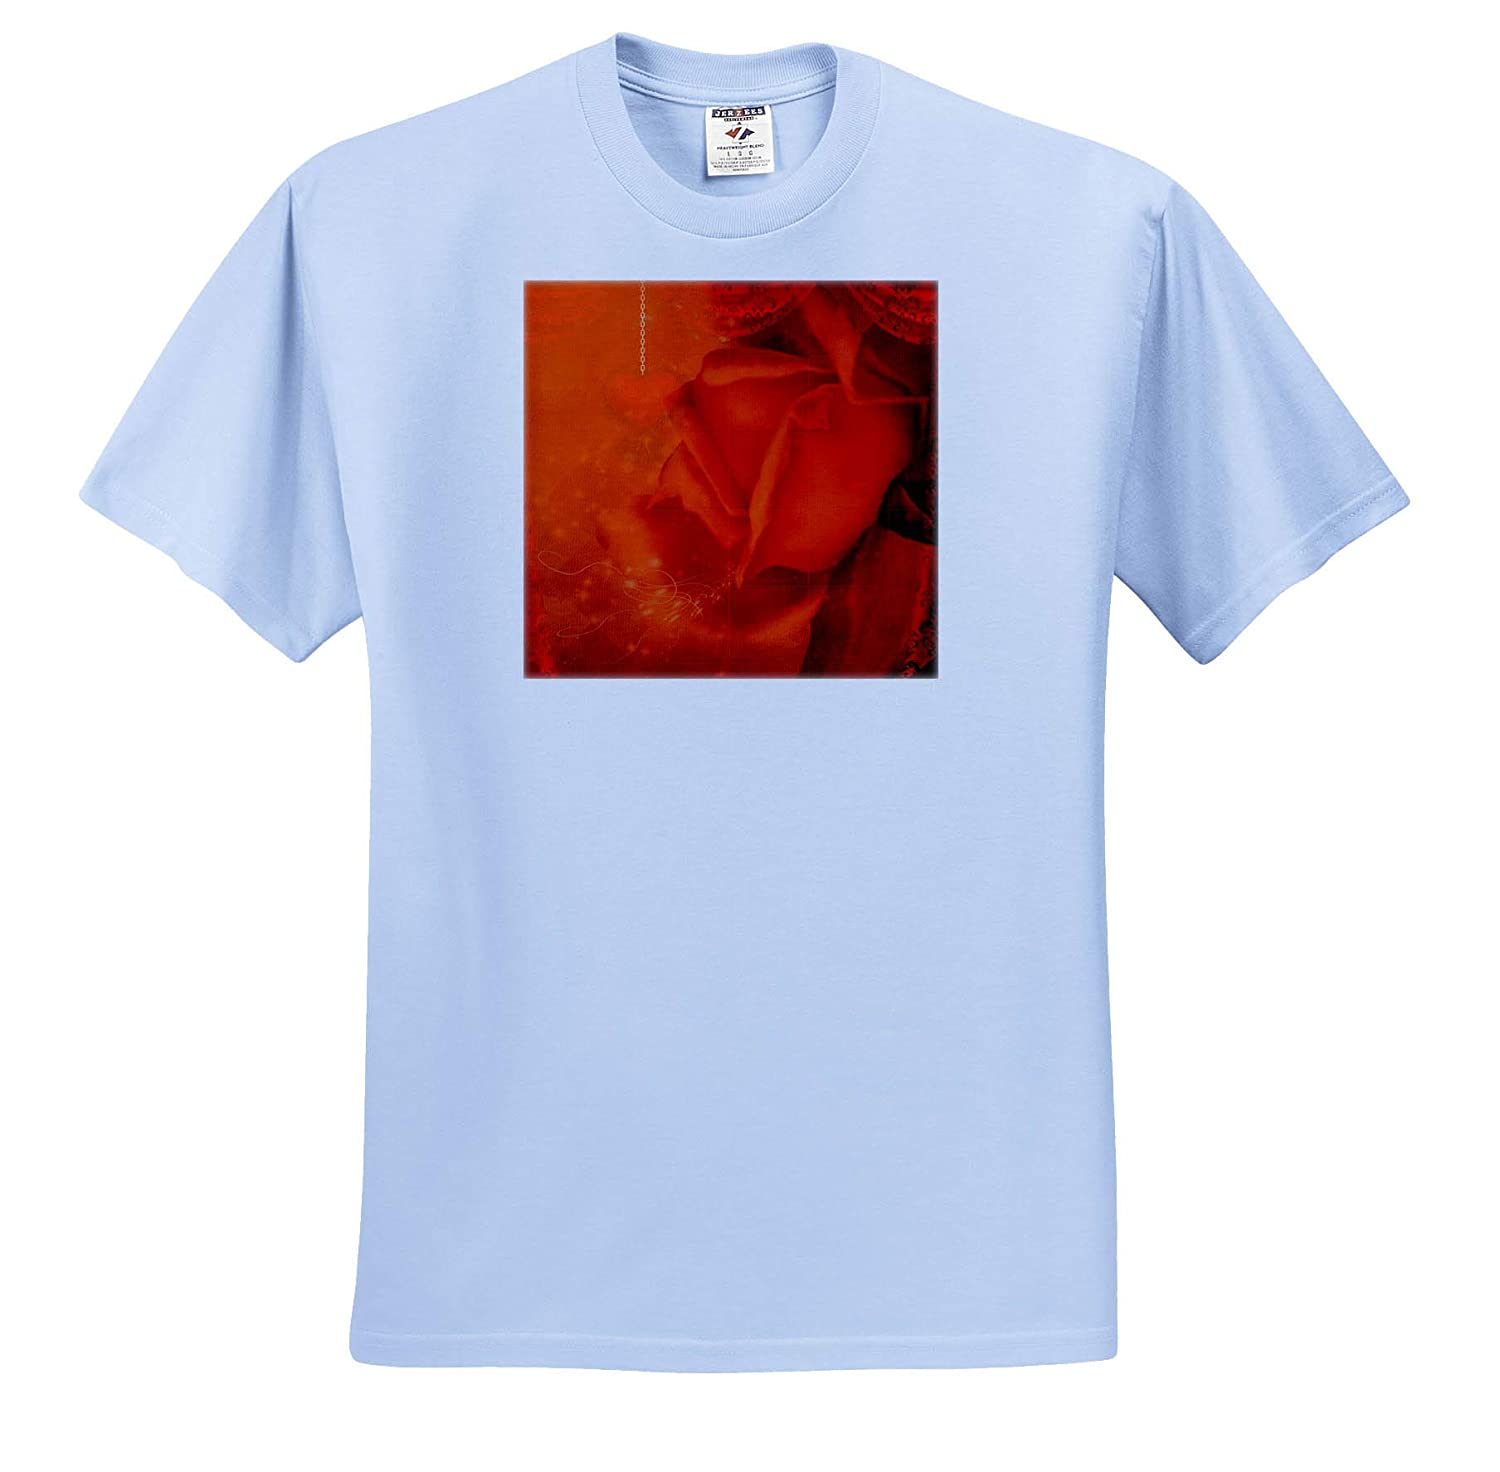 Wonderful Roses in Soft Colors with Heart 3dRose Heike K/öhnen Design Nature Flowers T-Shirts